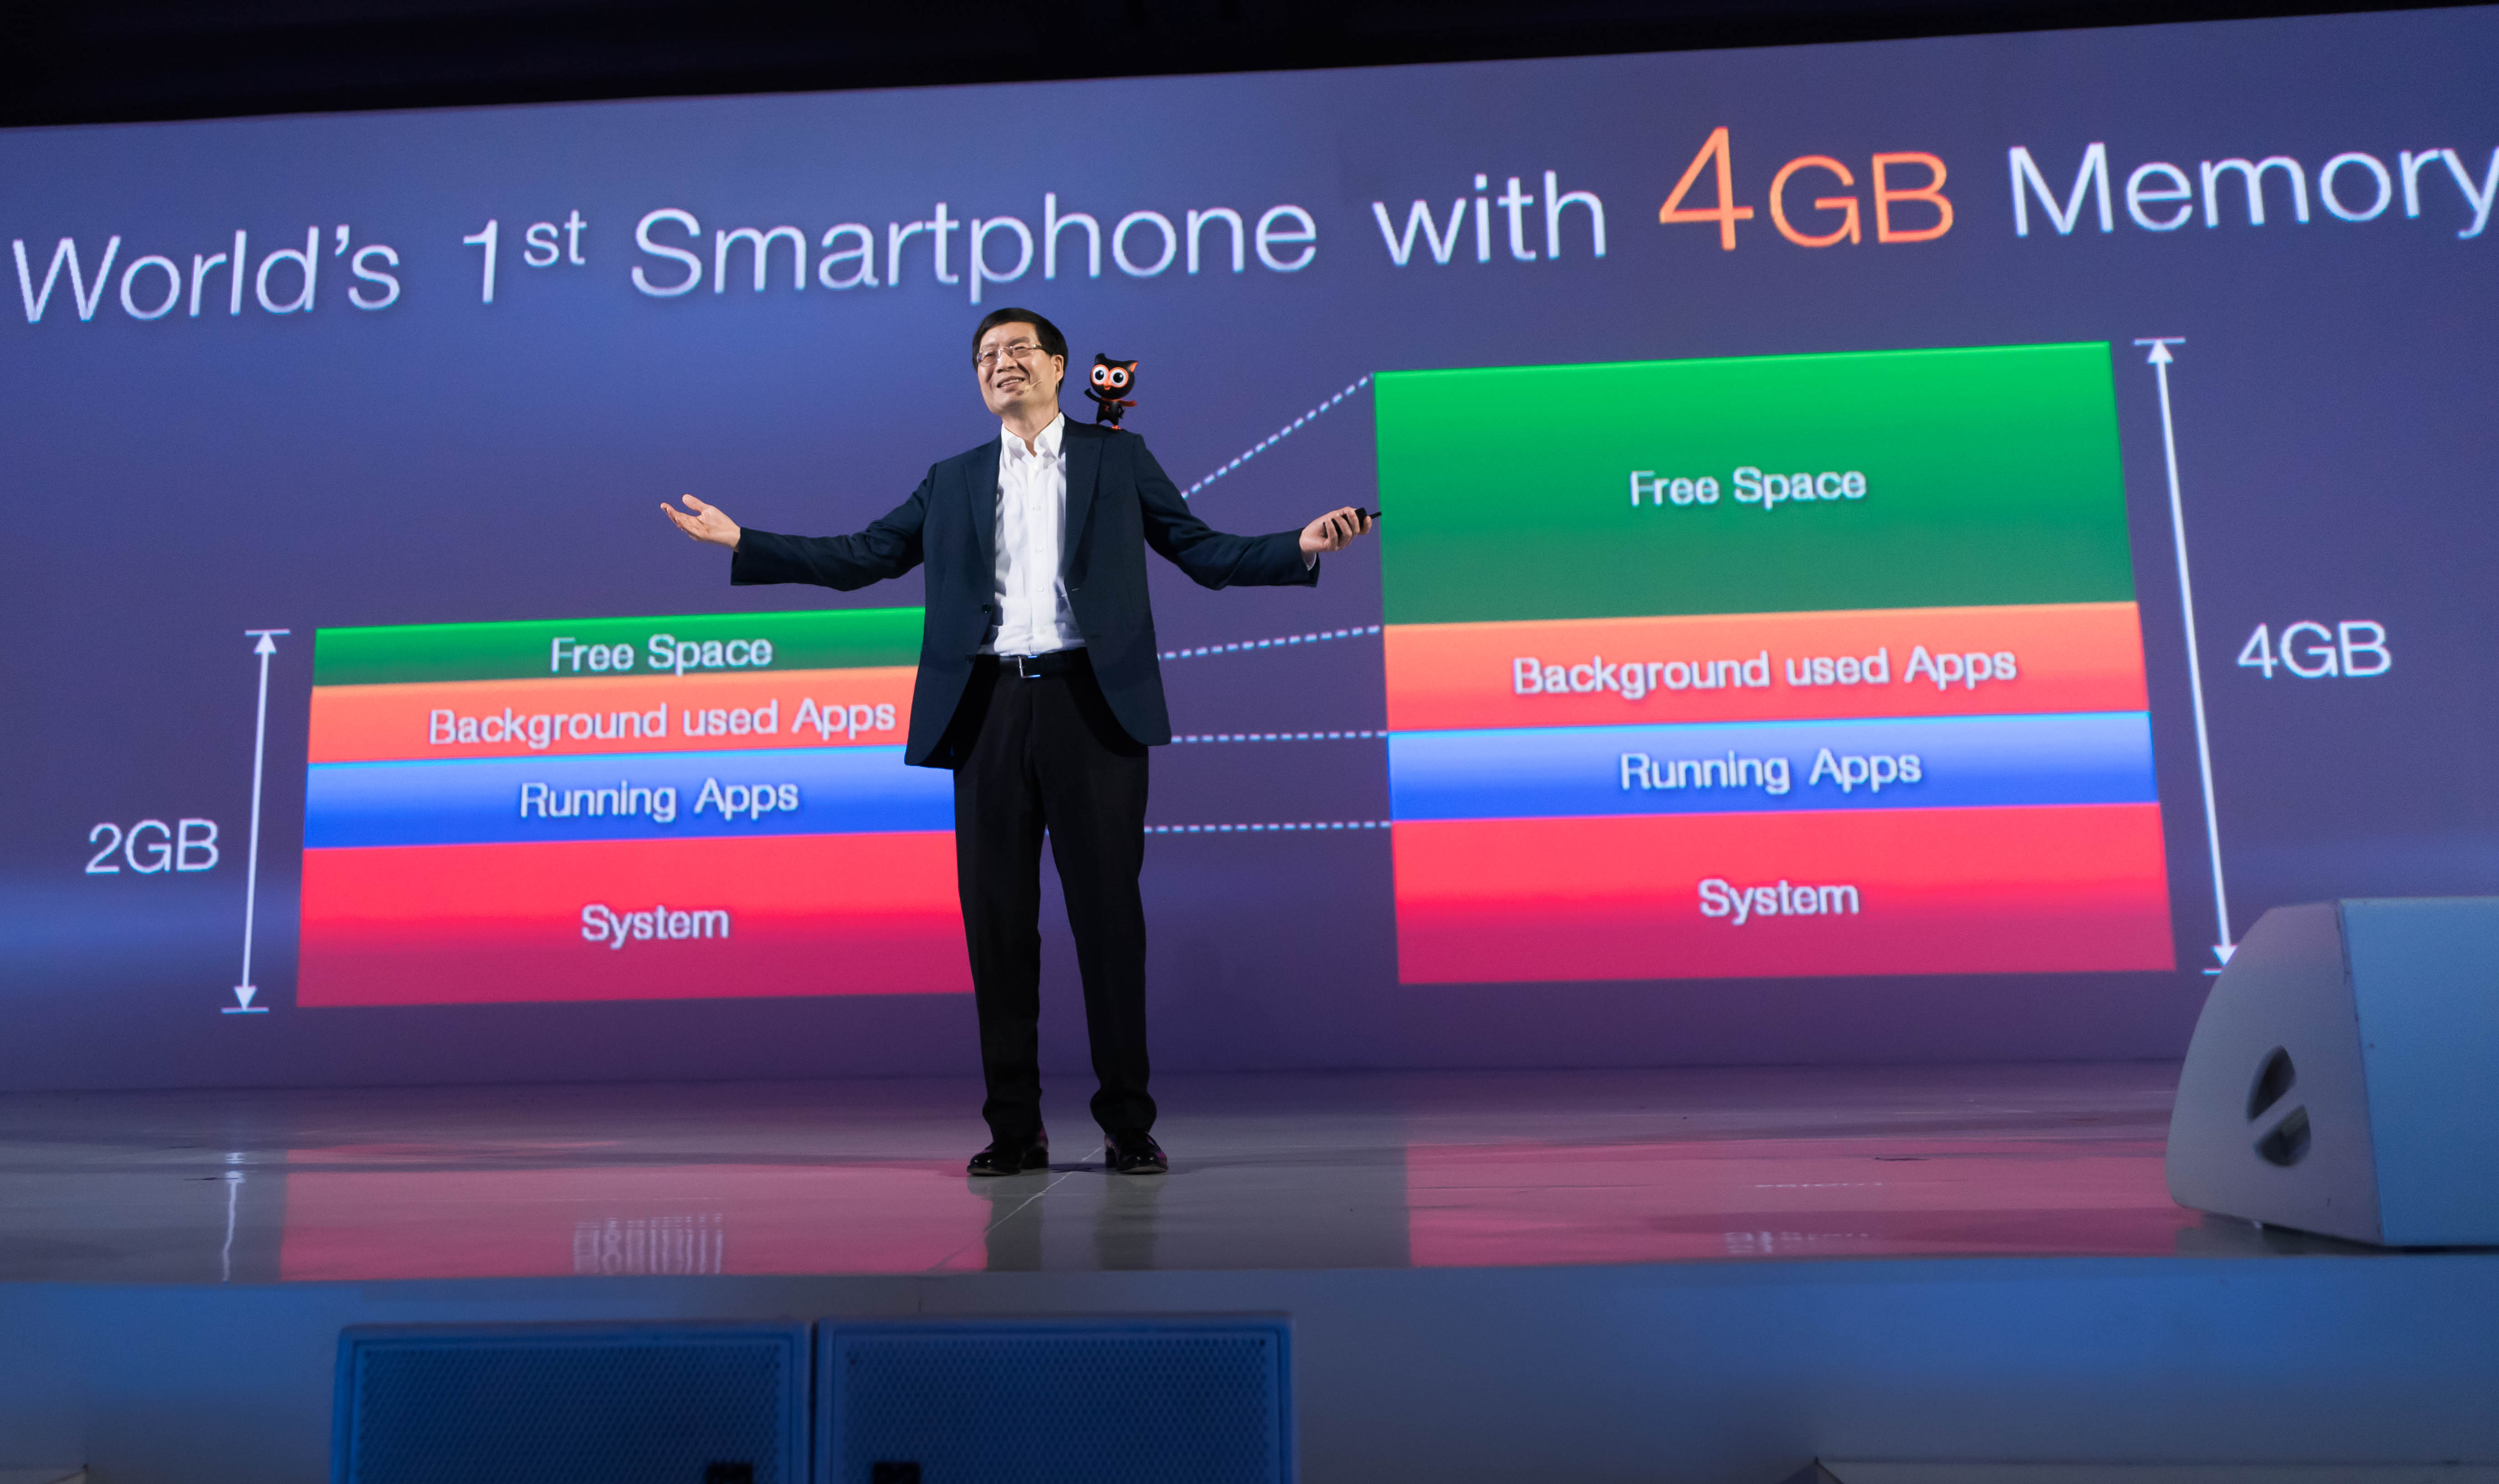 ASUS CEO Jerry Shen at launch event in Jakarta announces ZenFone 2-world's first 4GB smartphone.